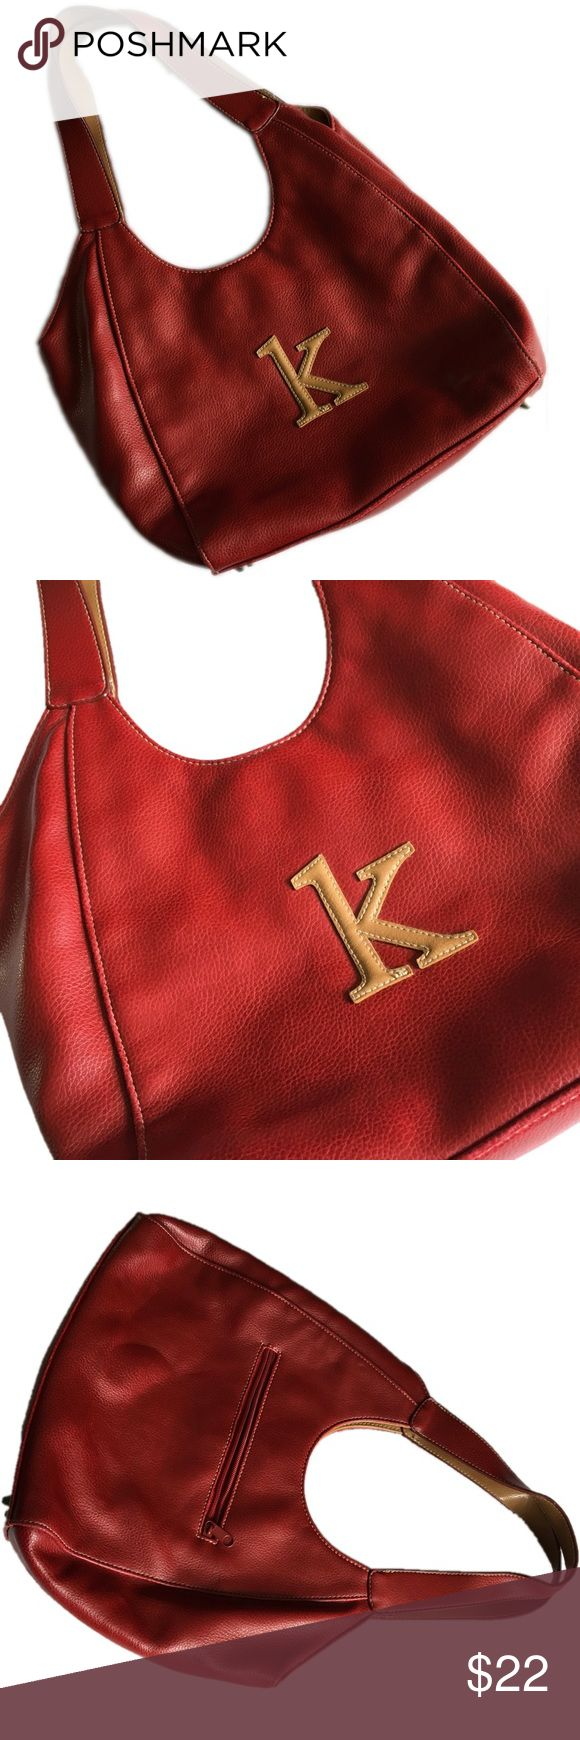 K bag - cute red bag for someone K -initial/letter Cute red bag with the letter ask on it.  Small zipper pocket on back.  Open in midddle with small magnetic button.  Inside has a zipper pocket (small on backside) as well as two small open pockets on side.  The front has the letter K on it - great initial bag for someone who's name starts with the letter K. Bags Shoulder Bags